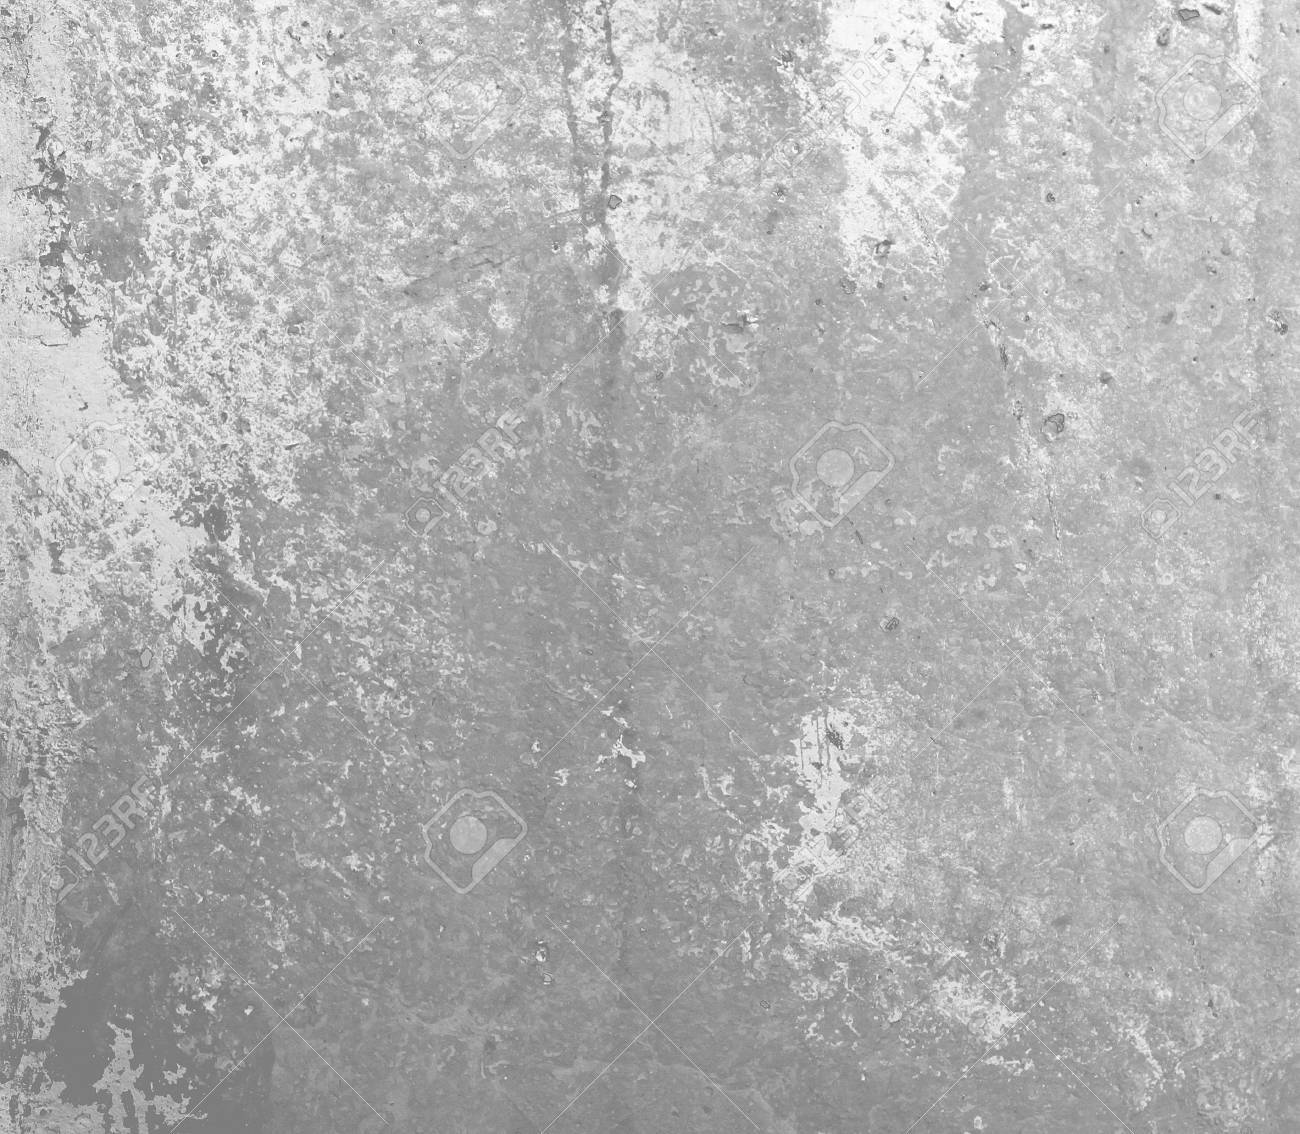 High Resolution Concrete Wall Textured Stock Photo